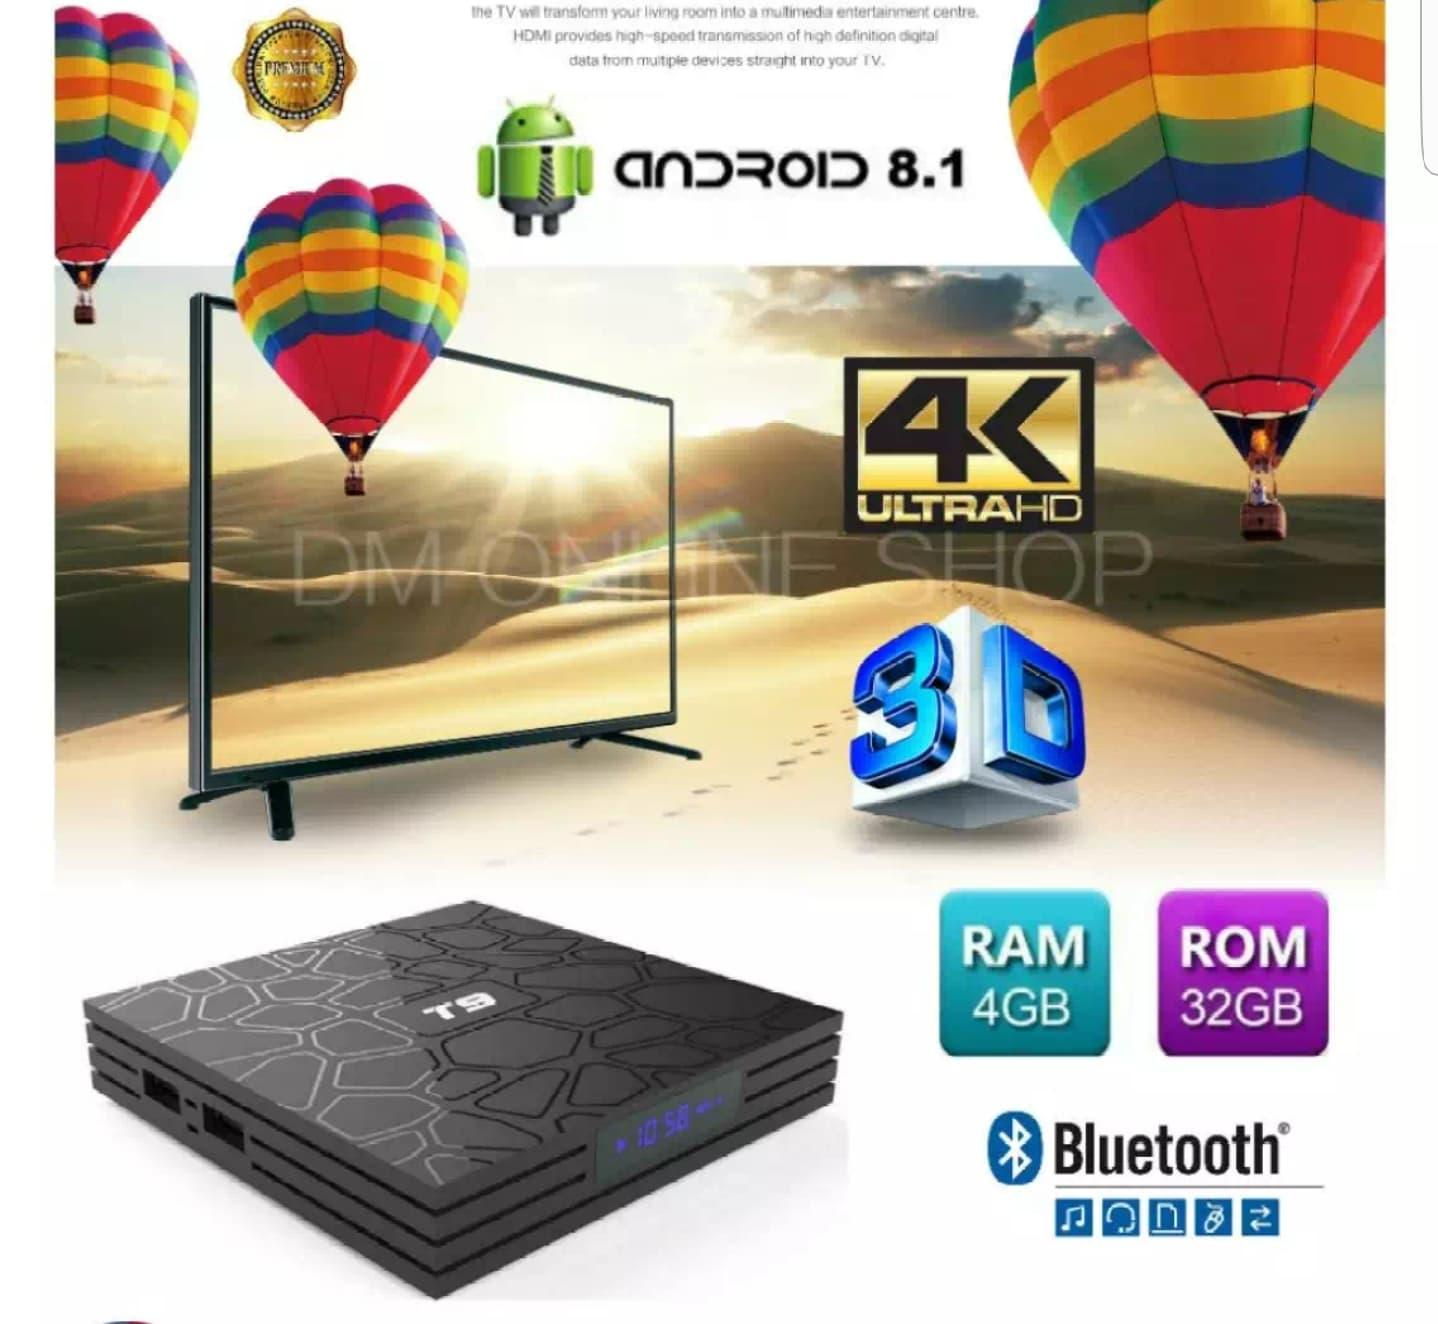 (preinstall 3000 Famous Live Channel+latestapp) 4gb+32gb T9 Smart Tv Box Android Box Iptv Mini Tvbox By Sjs1688.